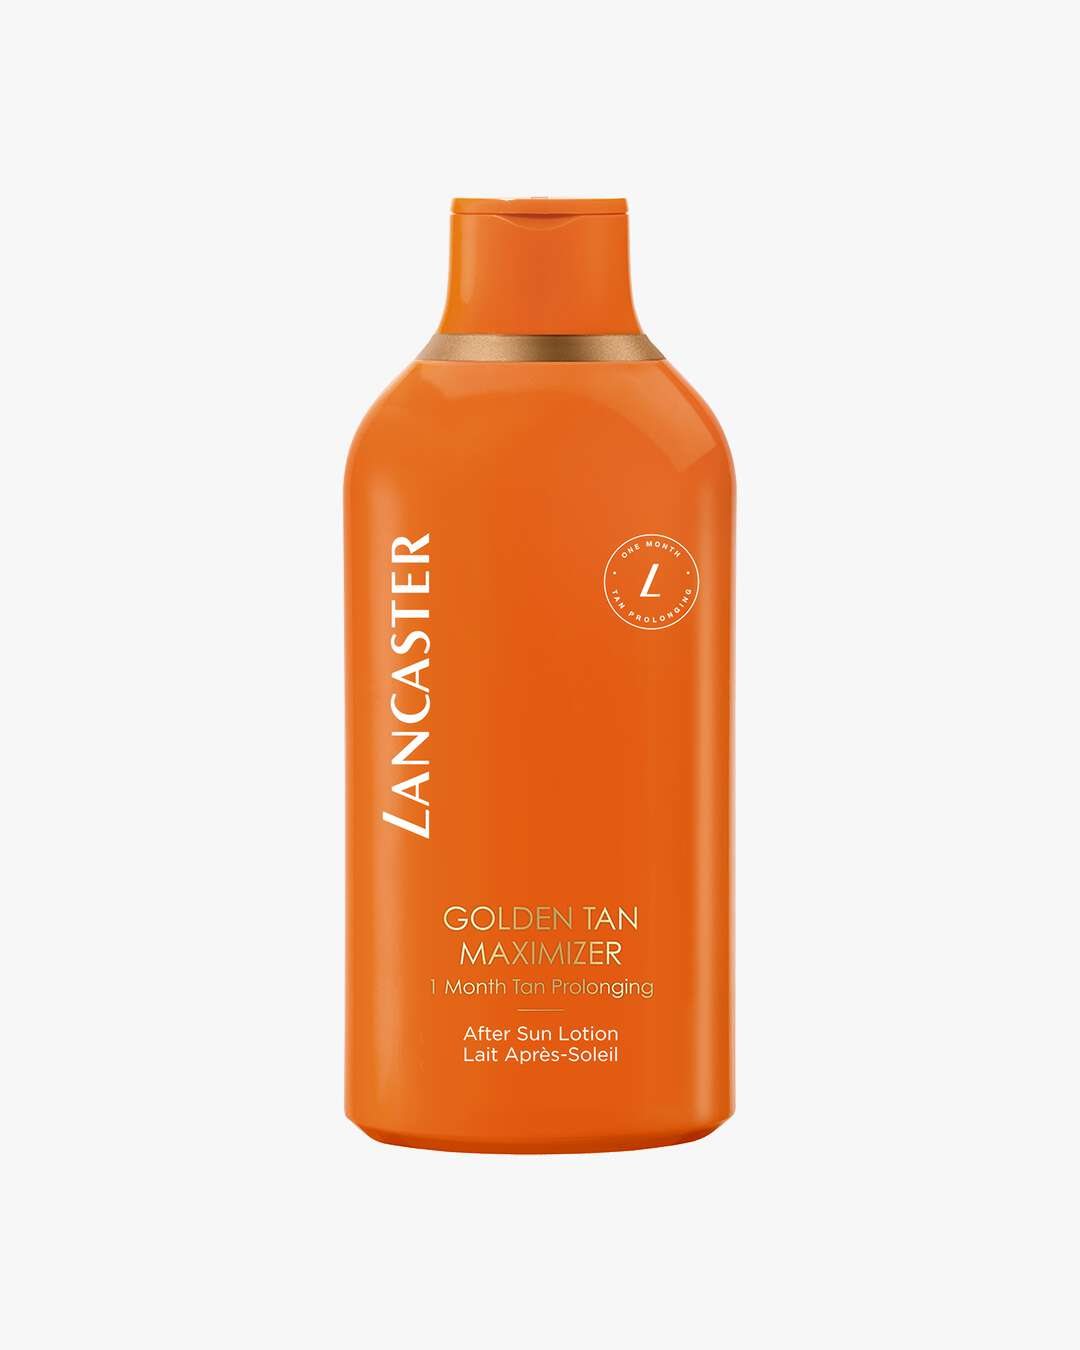 Produktbilde for Golden Tan Maximizer After Sun Lotion 400ml hos Fredrik & Louisa